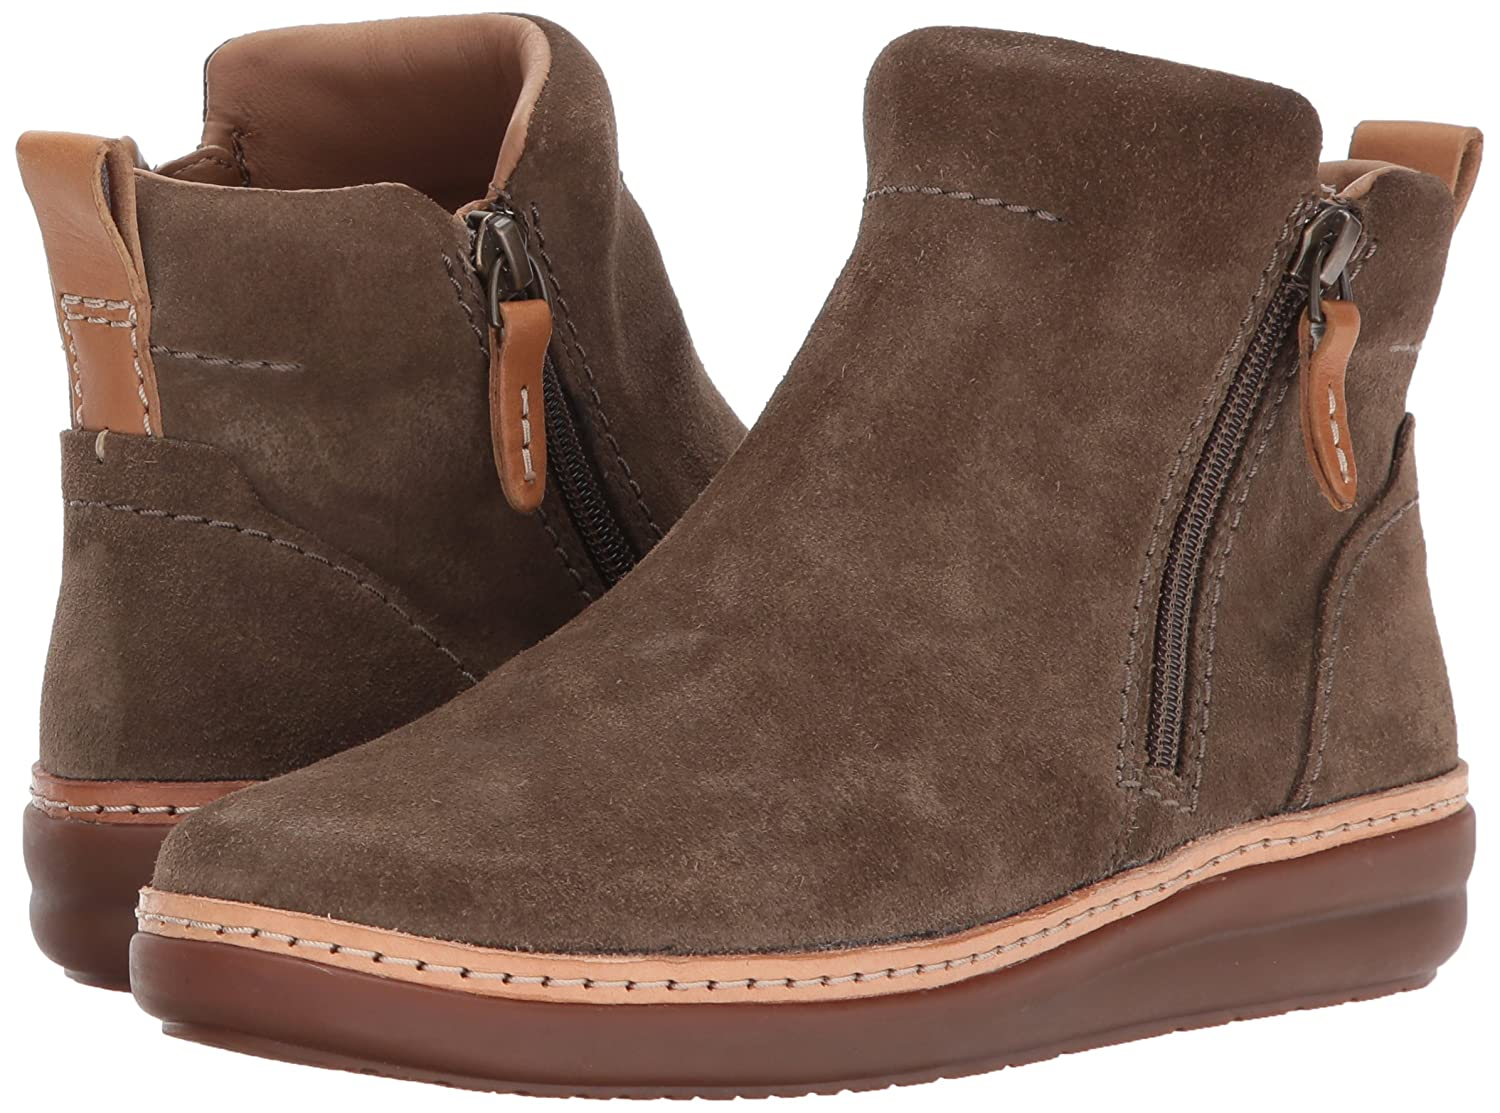 CLARKS Women's Amberlee ROSI US|Olive Ankle Bootie B01N4G3YE0 10 B(M) US|Olive ROSI Suede a73263